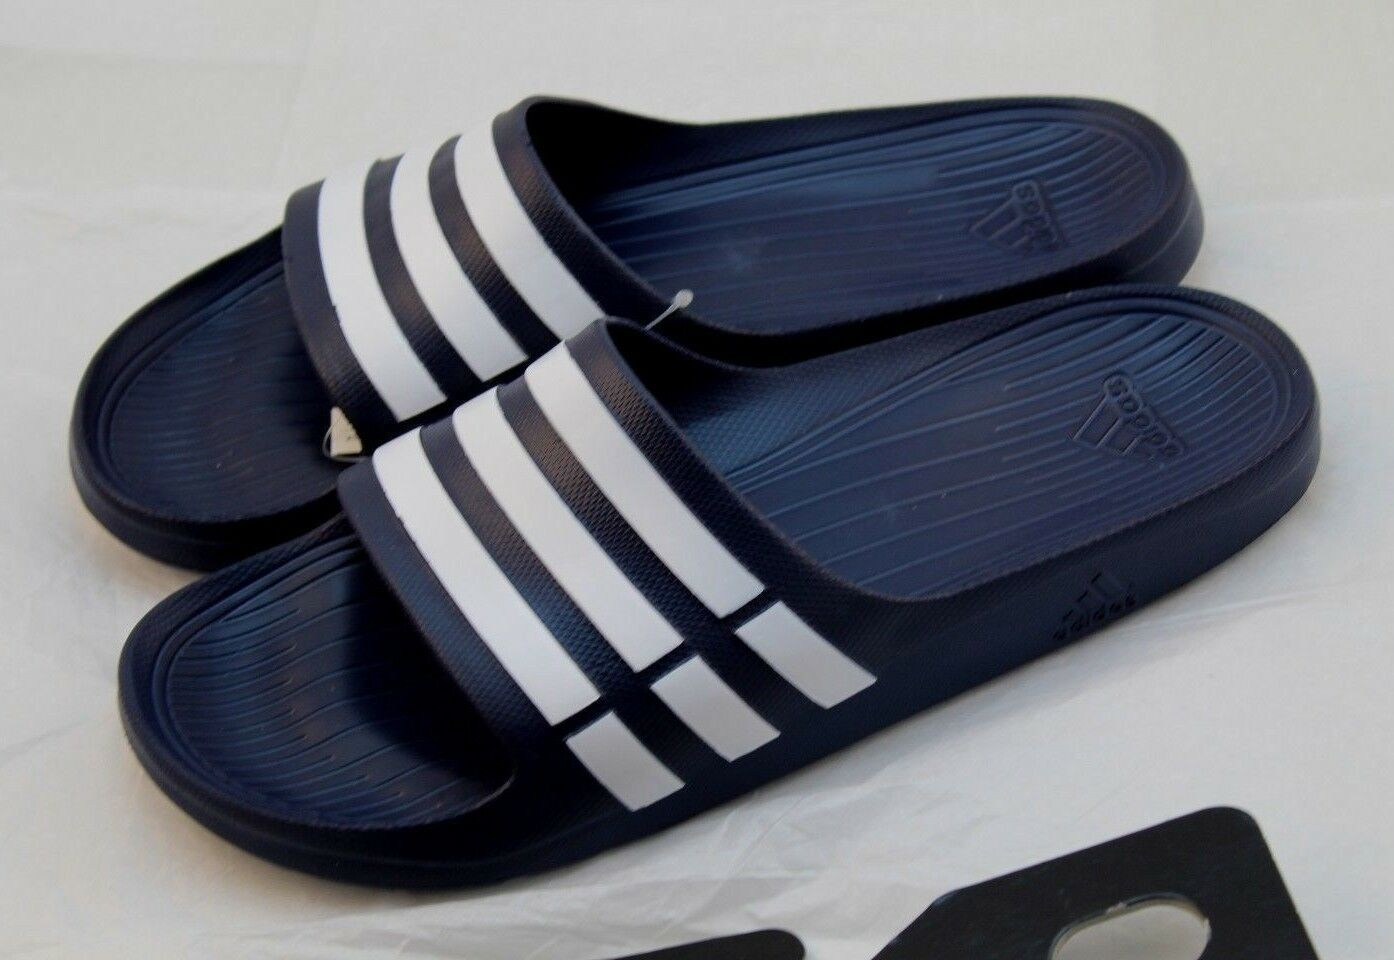 ADIDAS Duramo Navy Blue Slide Athletic Sandals Men's Size 11 (US)